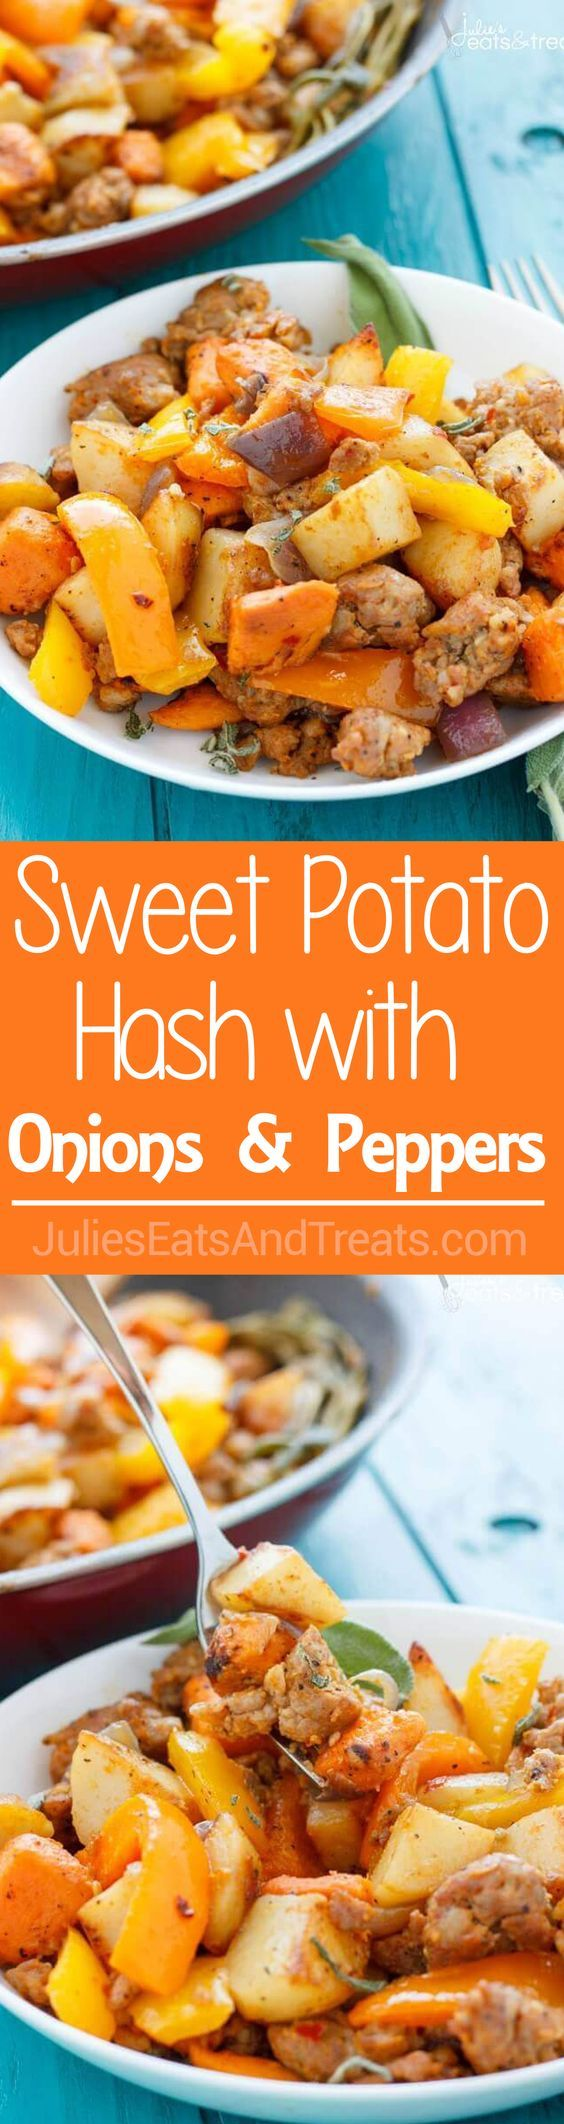 ... Potatoes Makes This Sweet Potato Hash with Sausage, Peppers and Onions